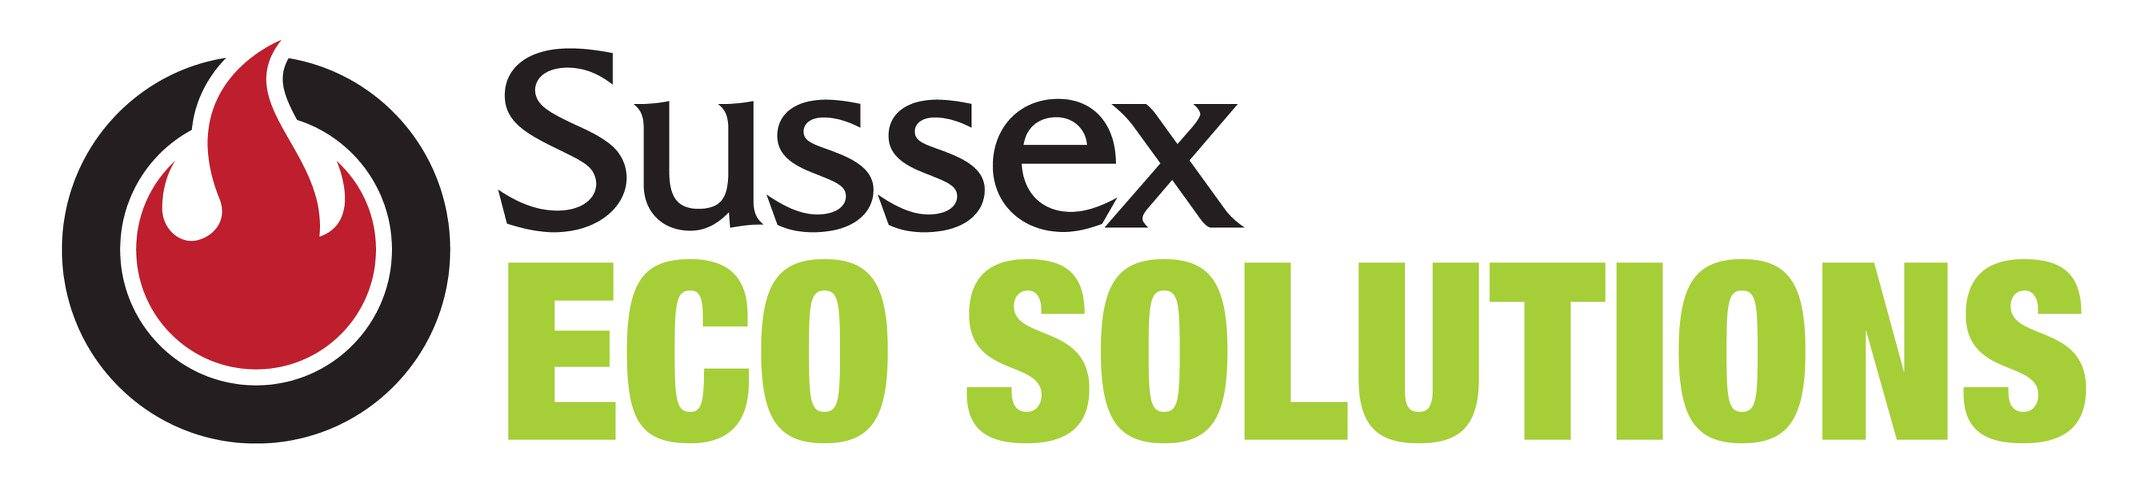 Sussex Eco Solutions